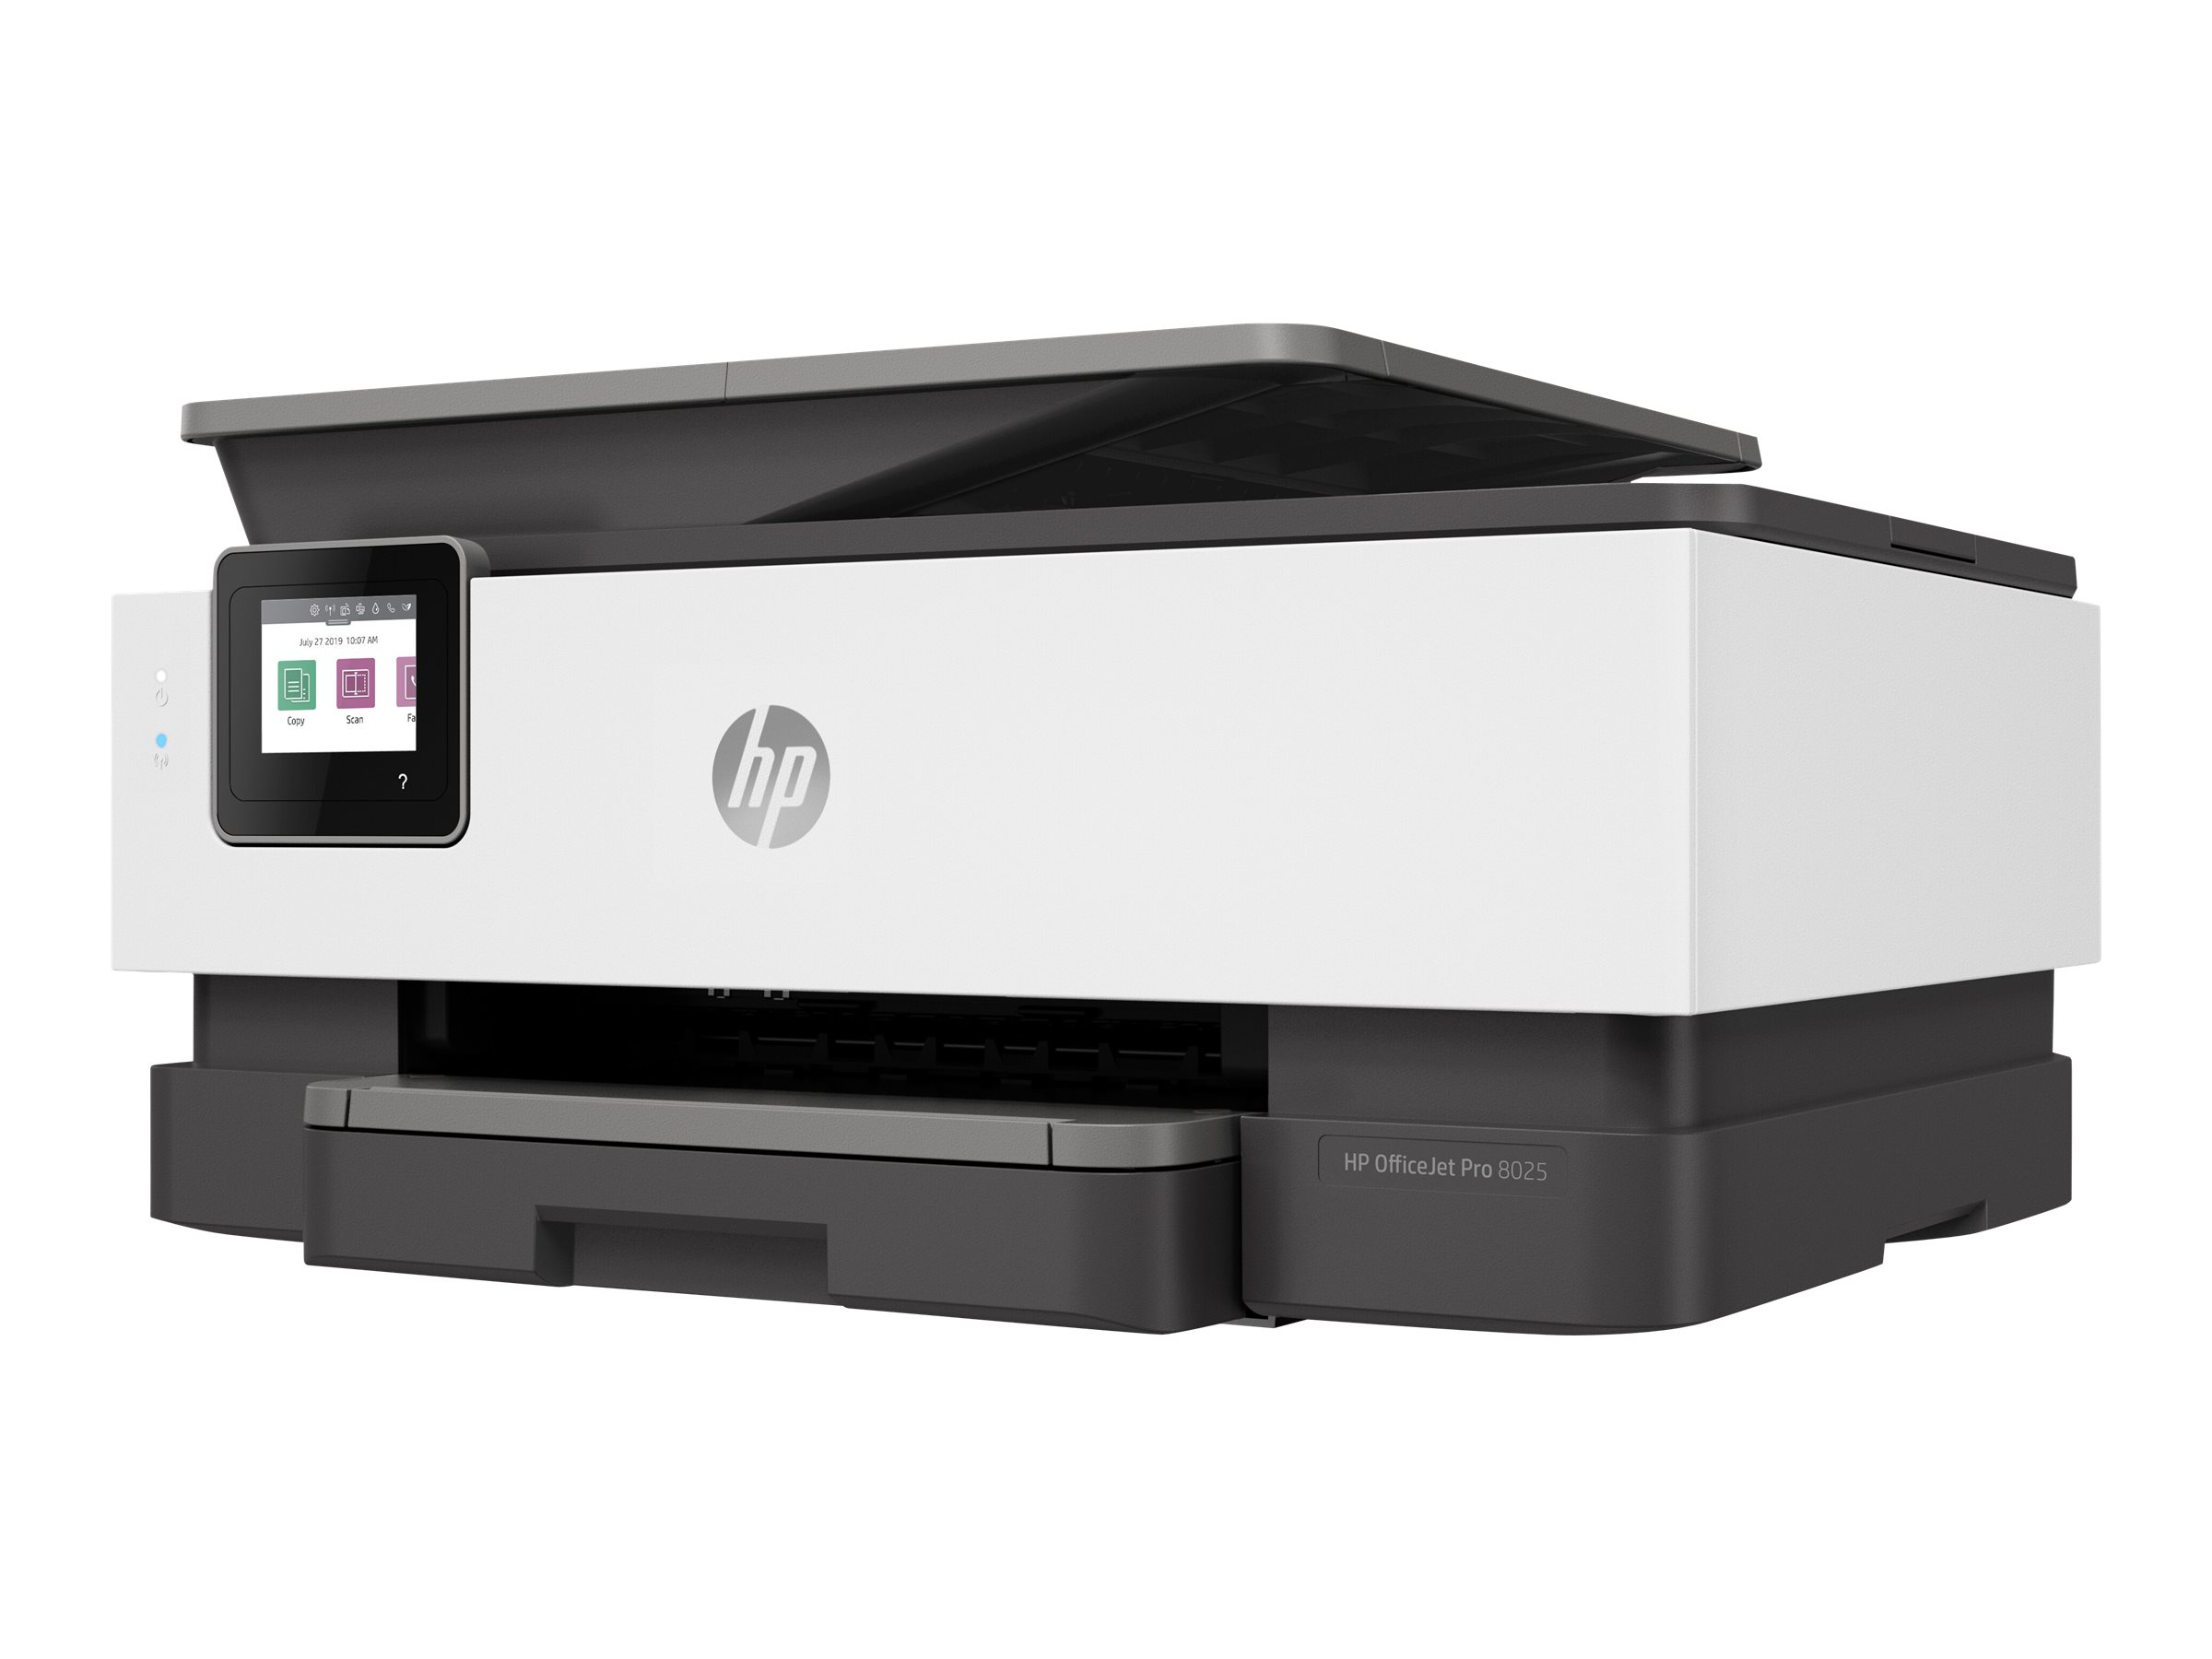 HP Officejet Pro 8025 All-in-One - imprimante multifonctions jet d'encre couleur A4 - Wifi - recto-verso